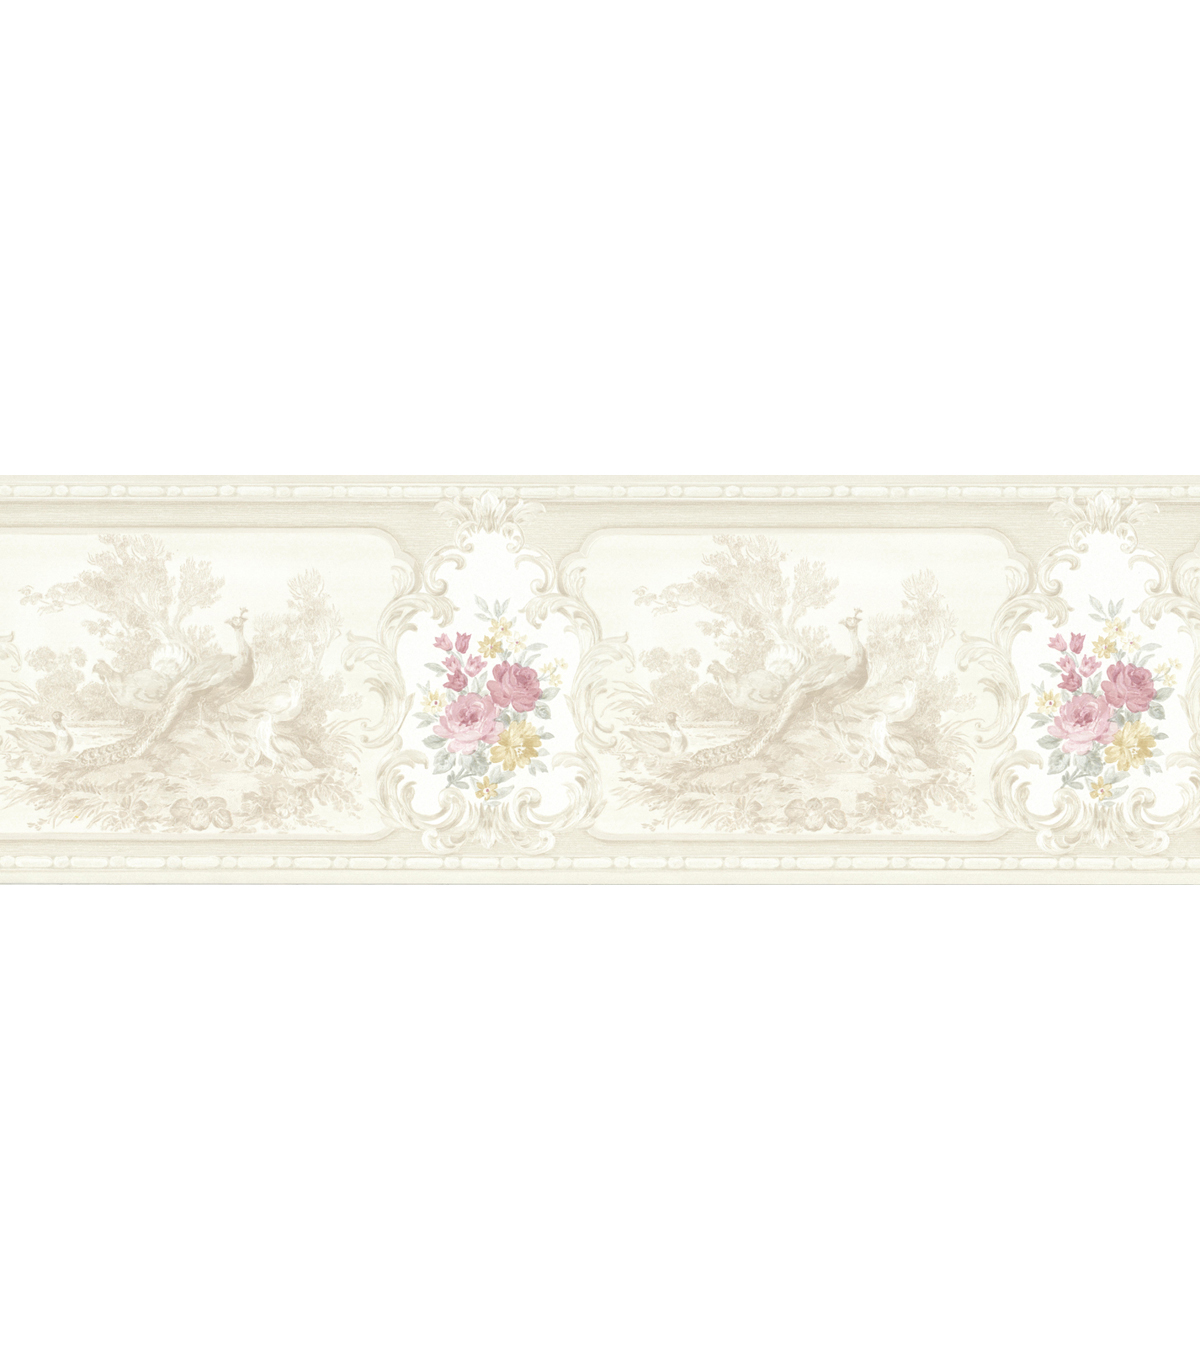 Kris Taupe Aviary Cameo Fleur Wallpaper Border Sample